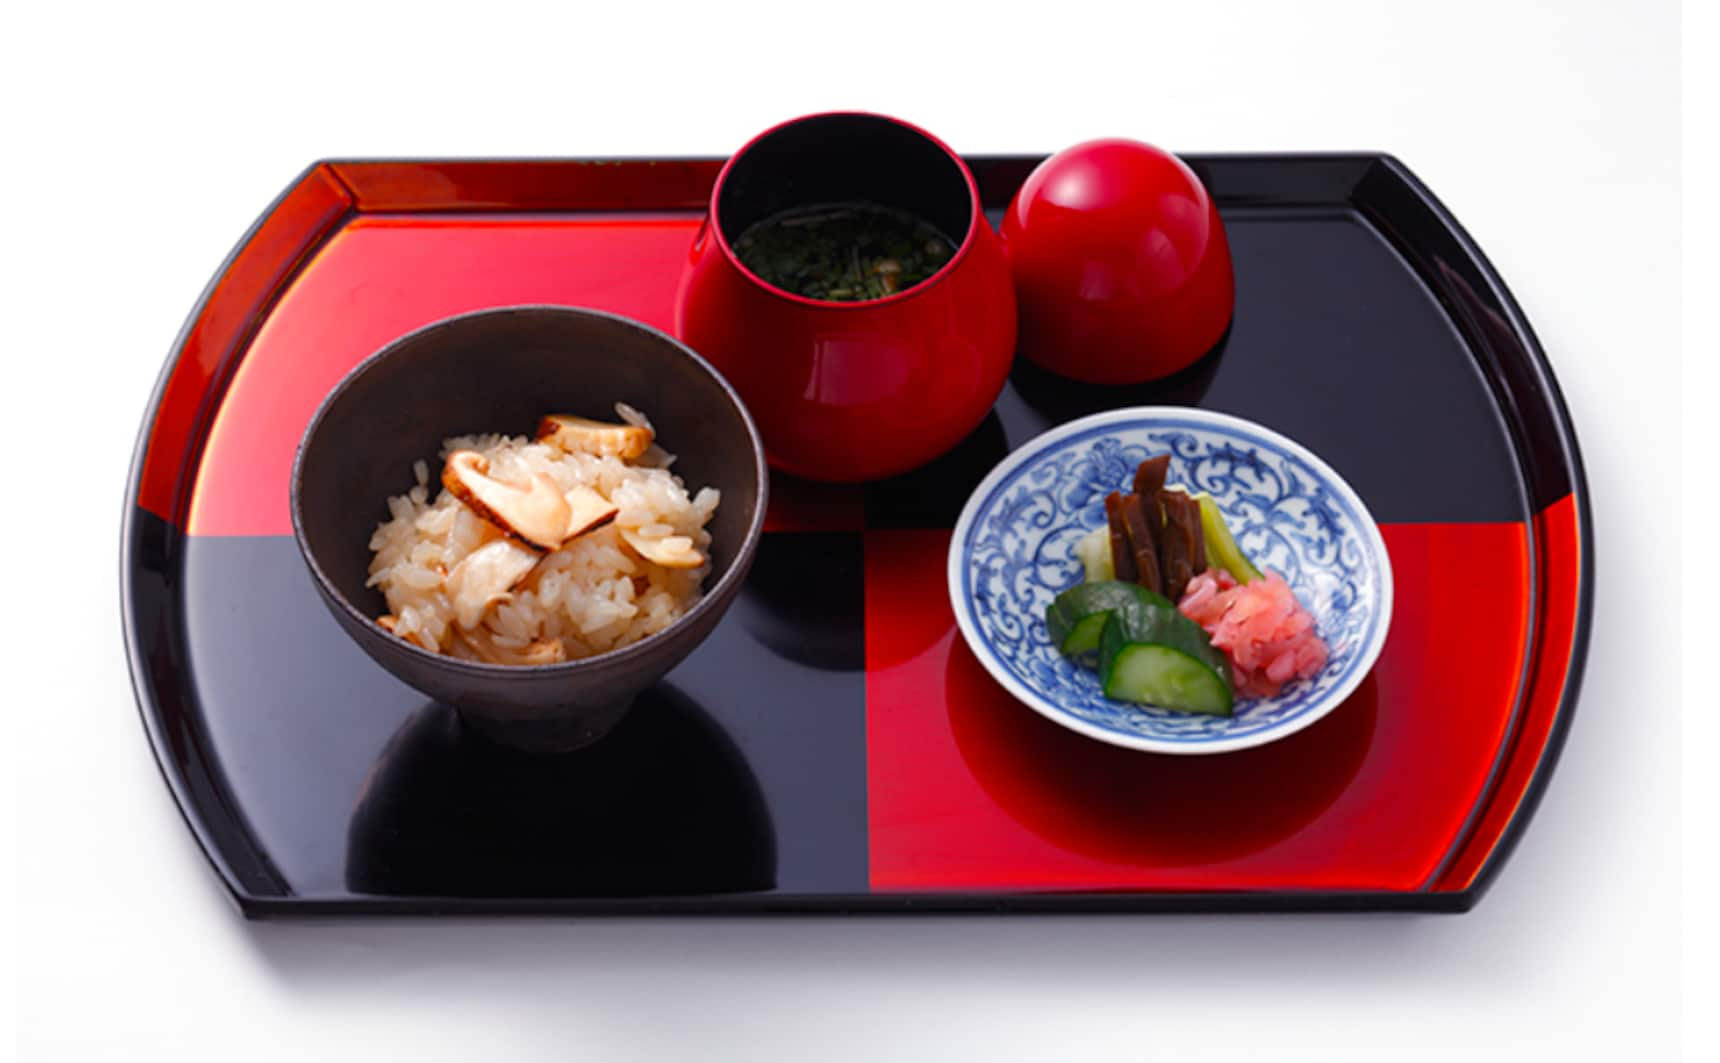 Japan's Culture & Culinary Artisans